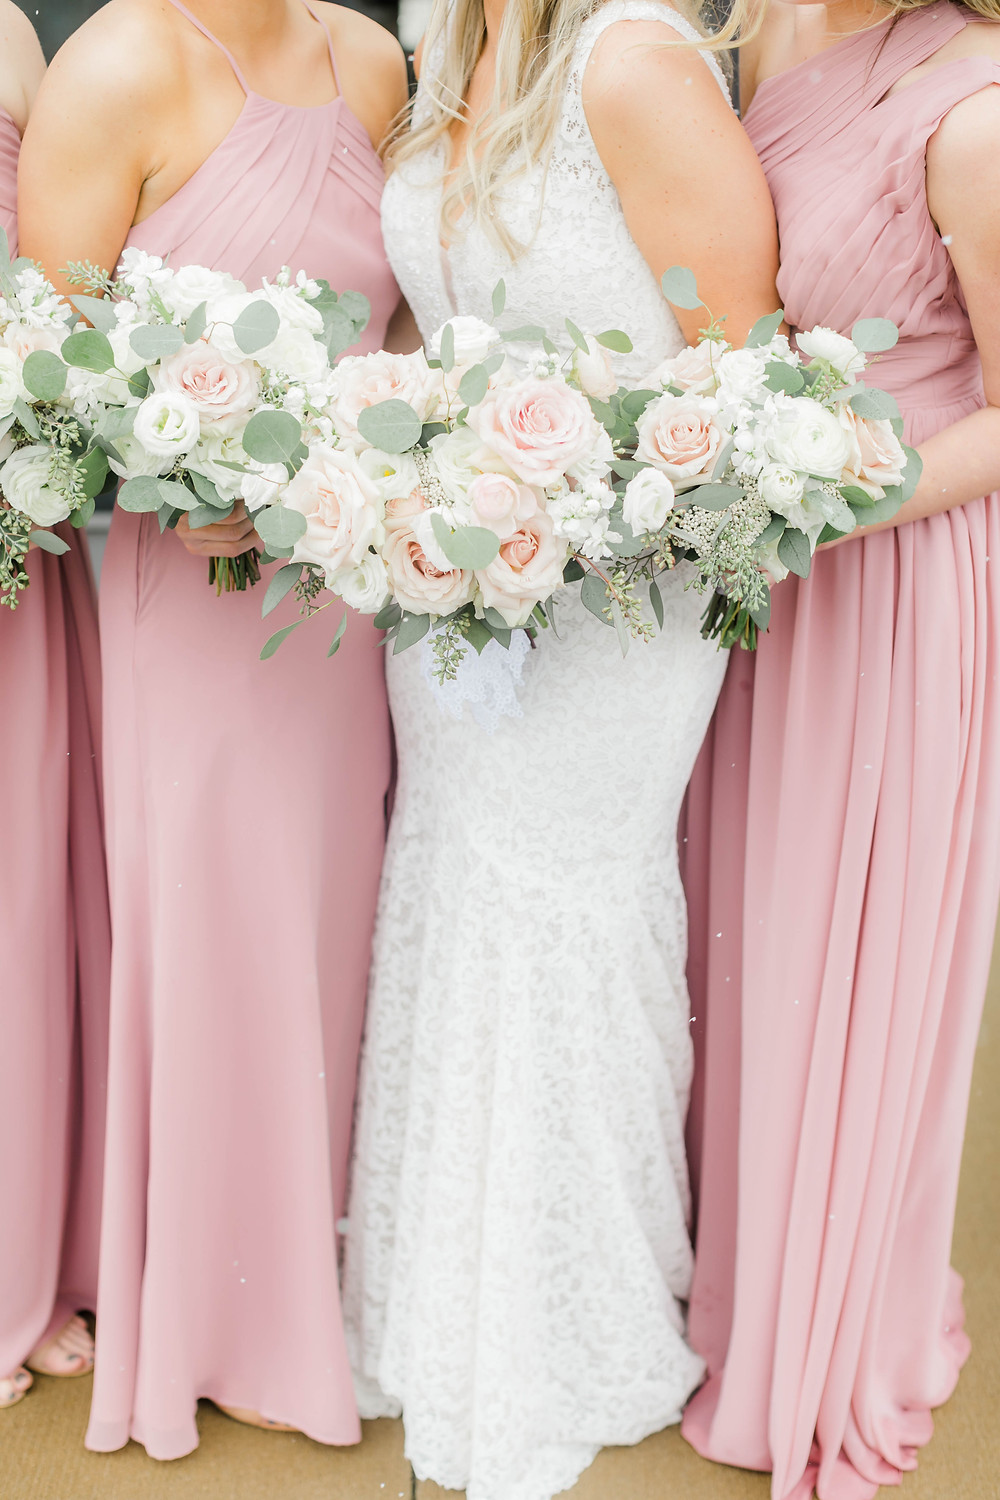 Bridal party with Studio Bloom Iowa bouquets of blush roses, ranunculus, lisianthus, stock, rice flower, and eucalyptus